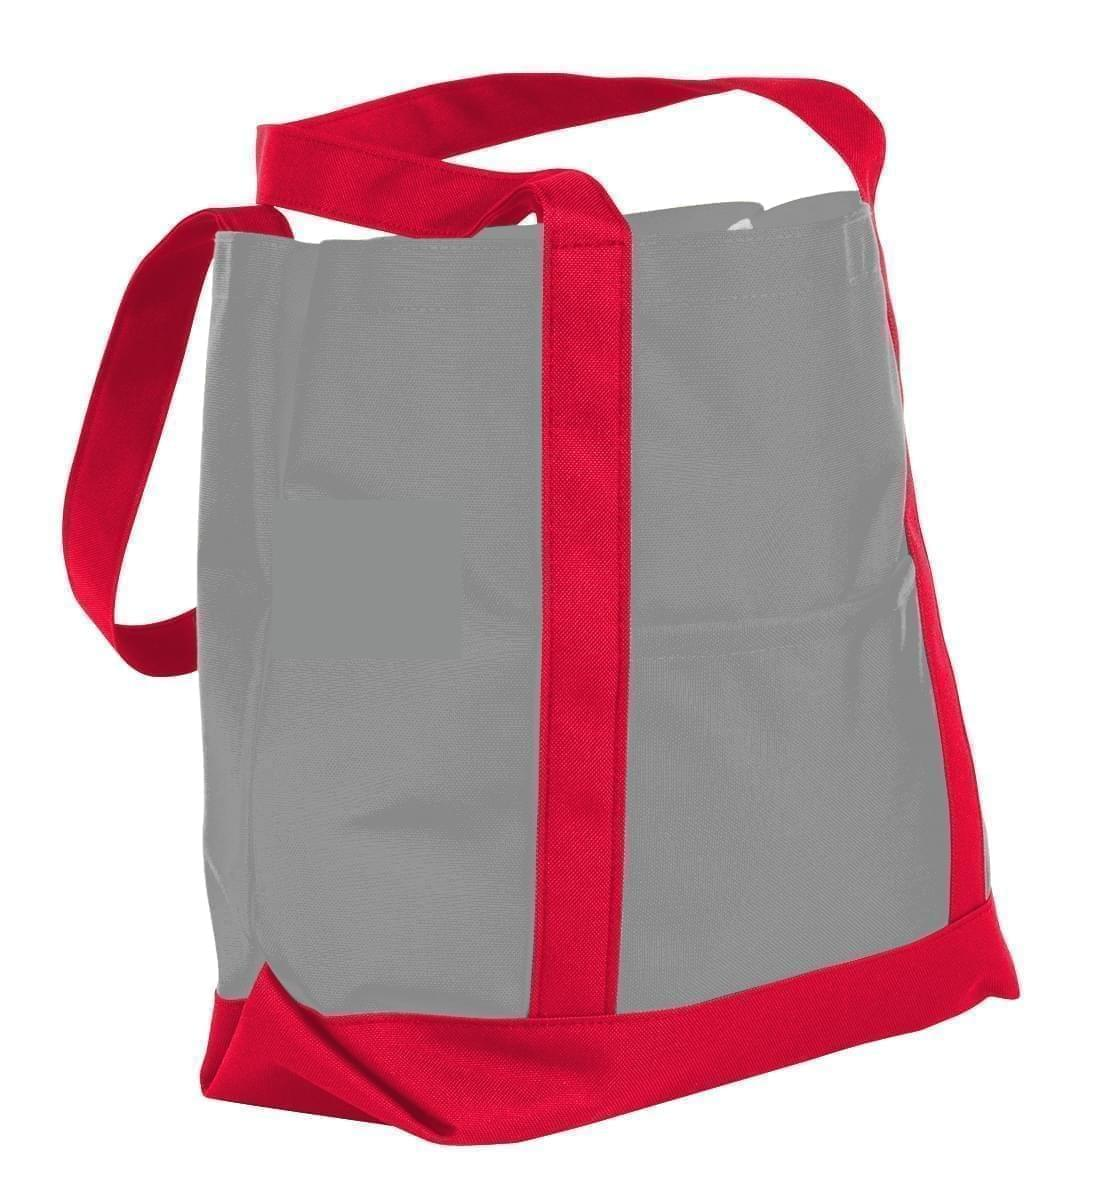 USA Made Nylon Poly Boat Tote Bags, Grey-Red, XAACL1UA1L